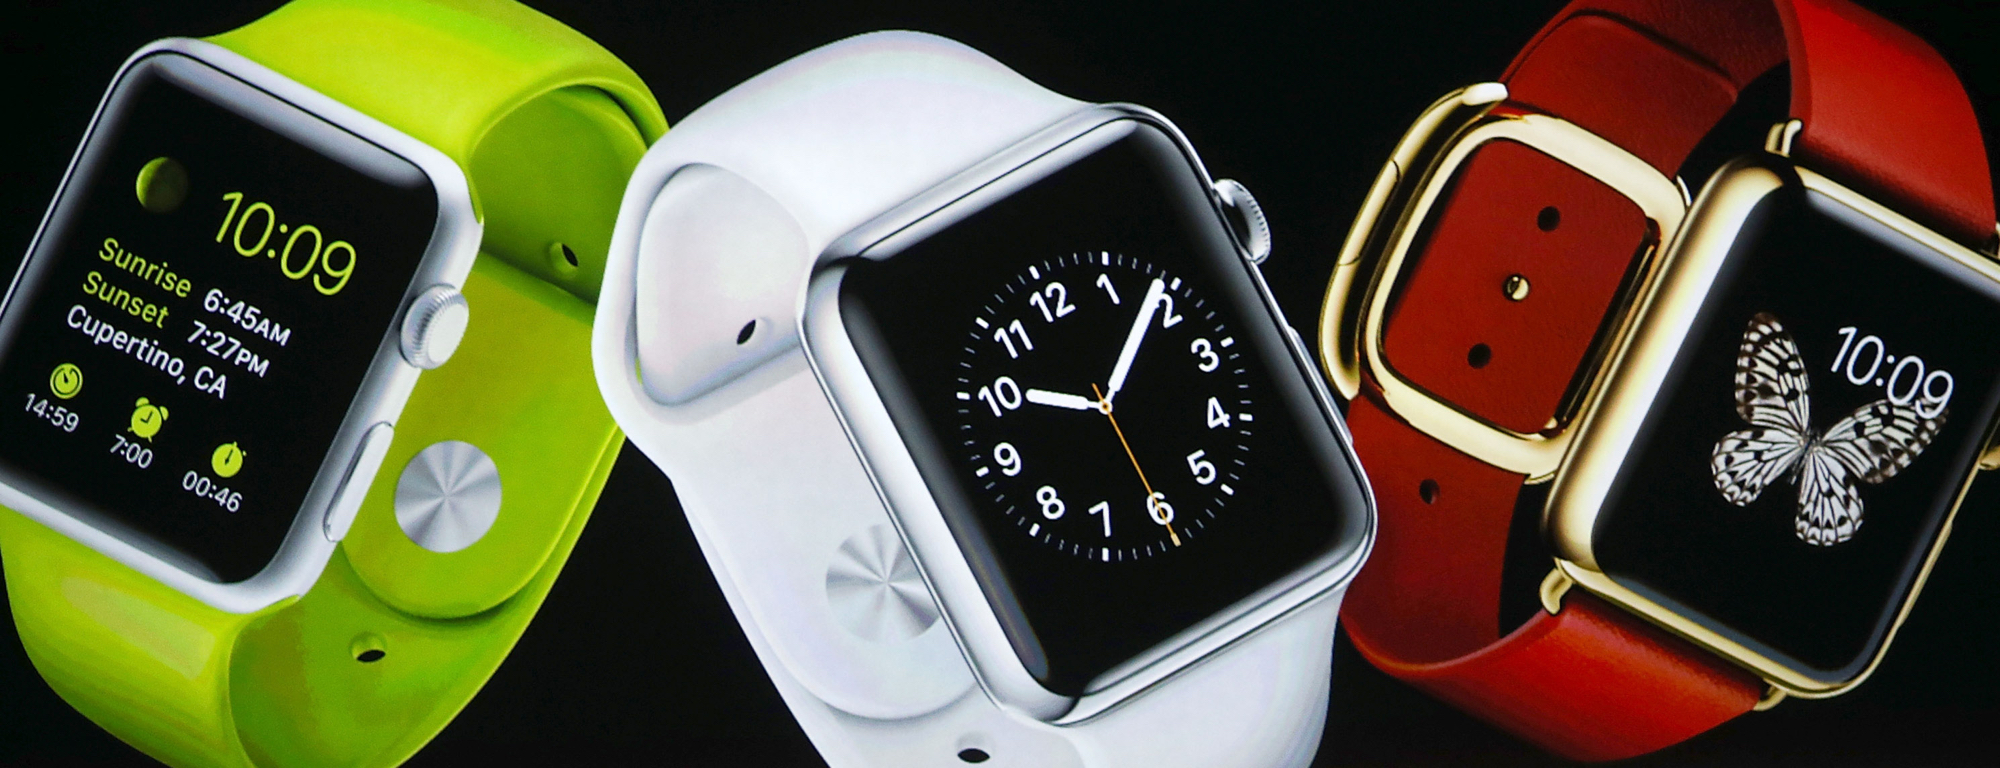 AppleWatch Andro Dollar 2 - Apple unveils the Apple Watch